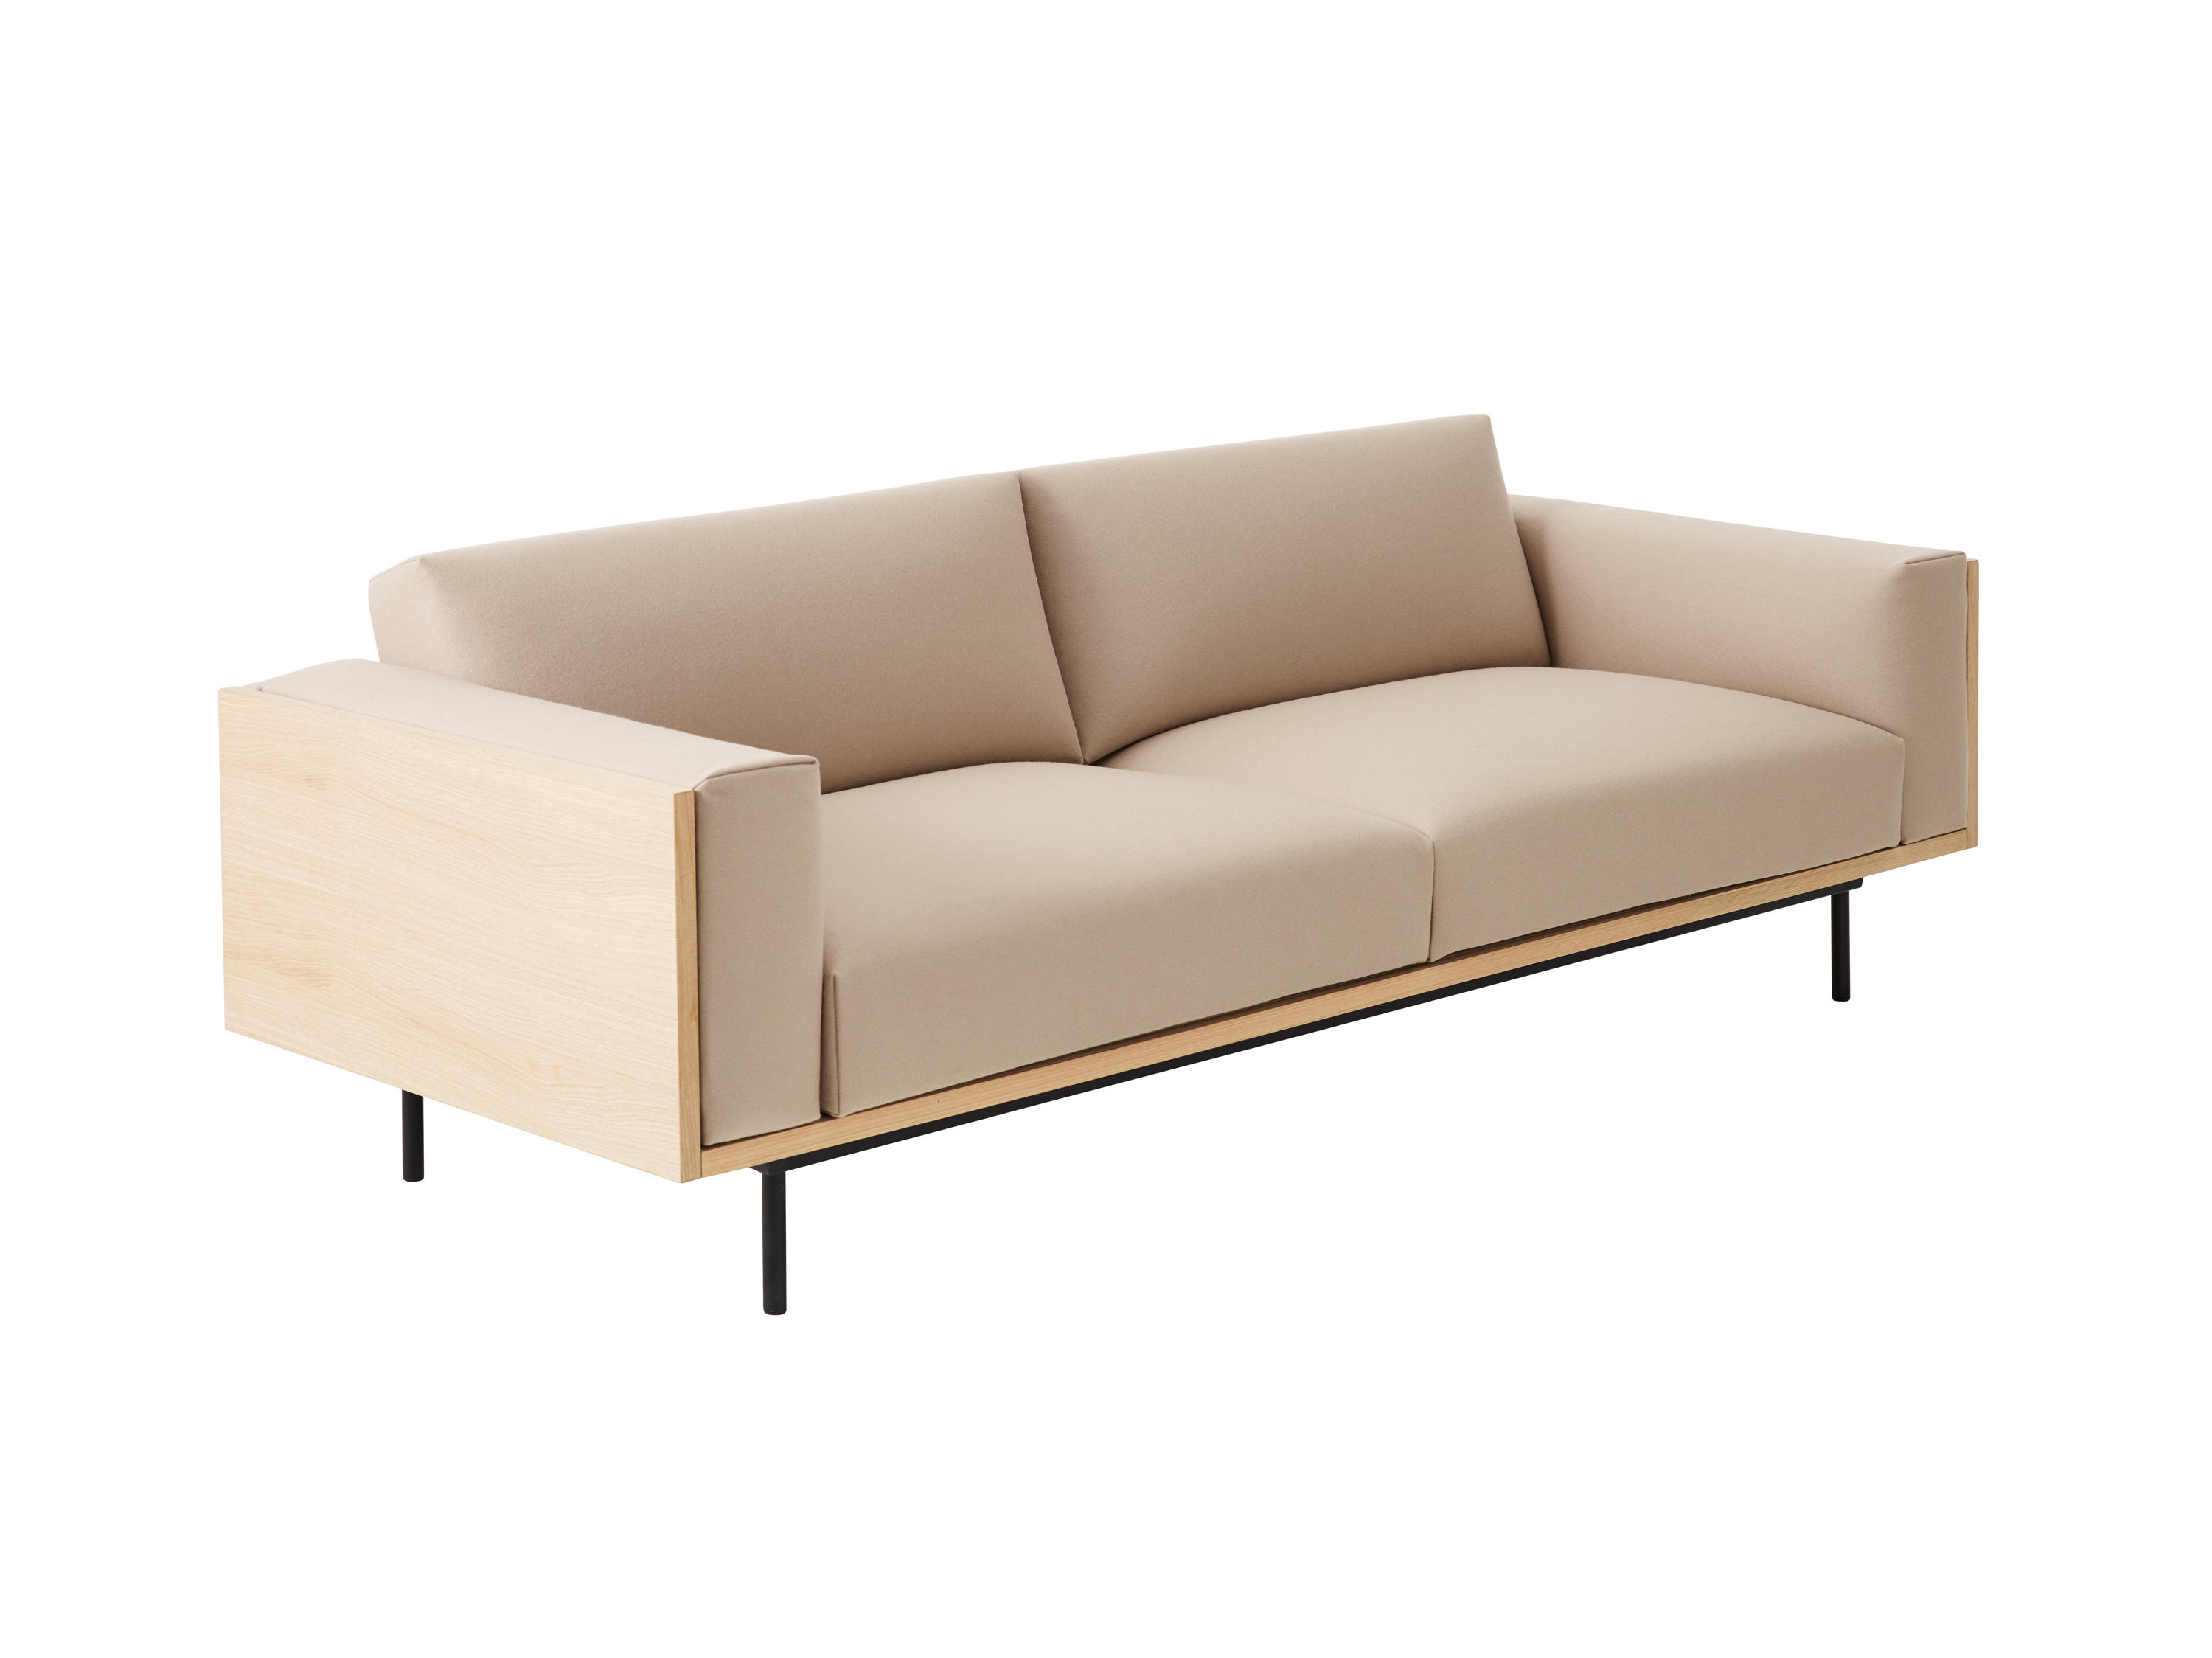 WOOD Lounge sofas from Swedese Architonic